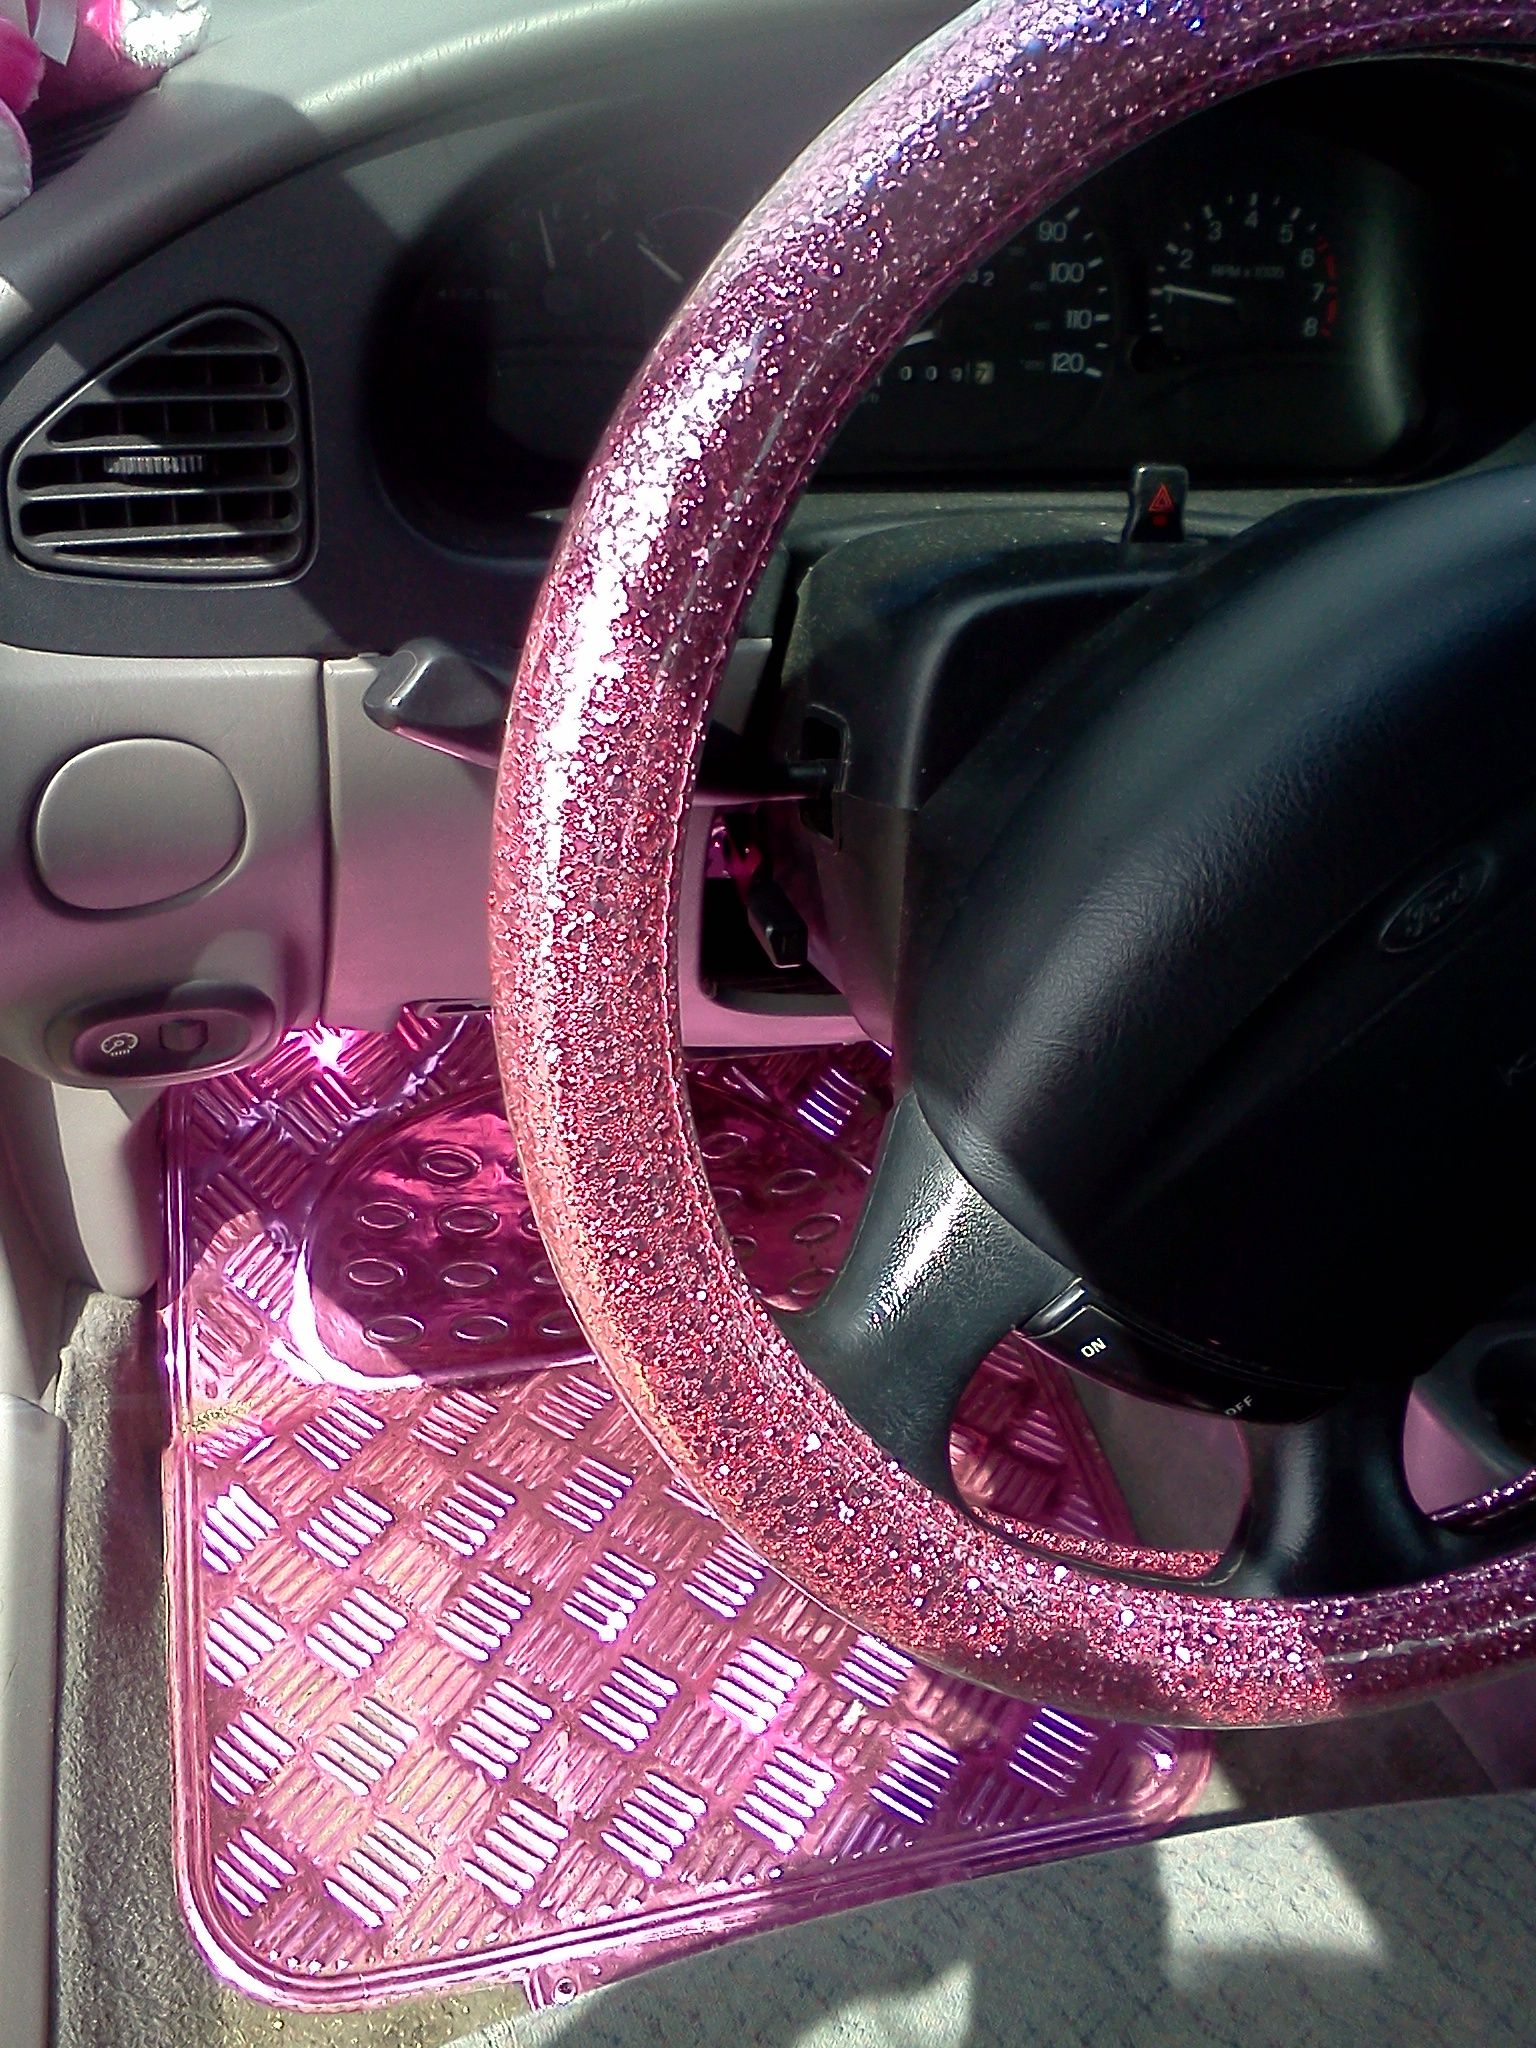 My Own Glitter Pink Steering Wheel Cover From Korea Bought For Me By Husband And Aluminum Floor Mats Scotland